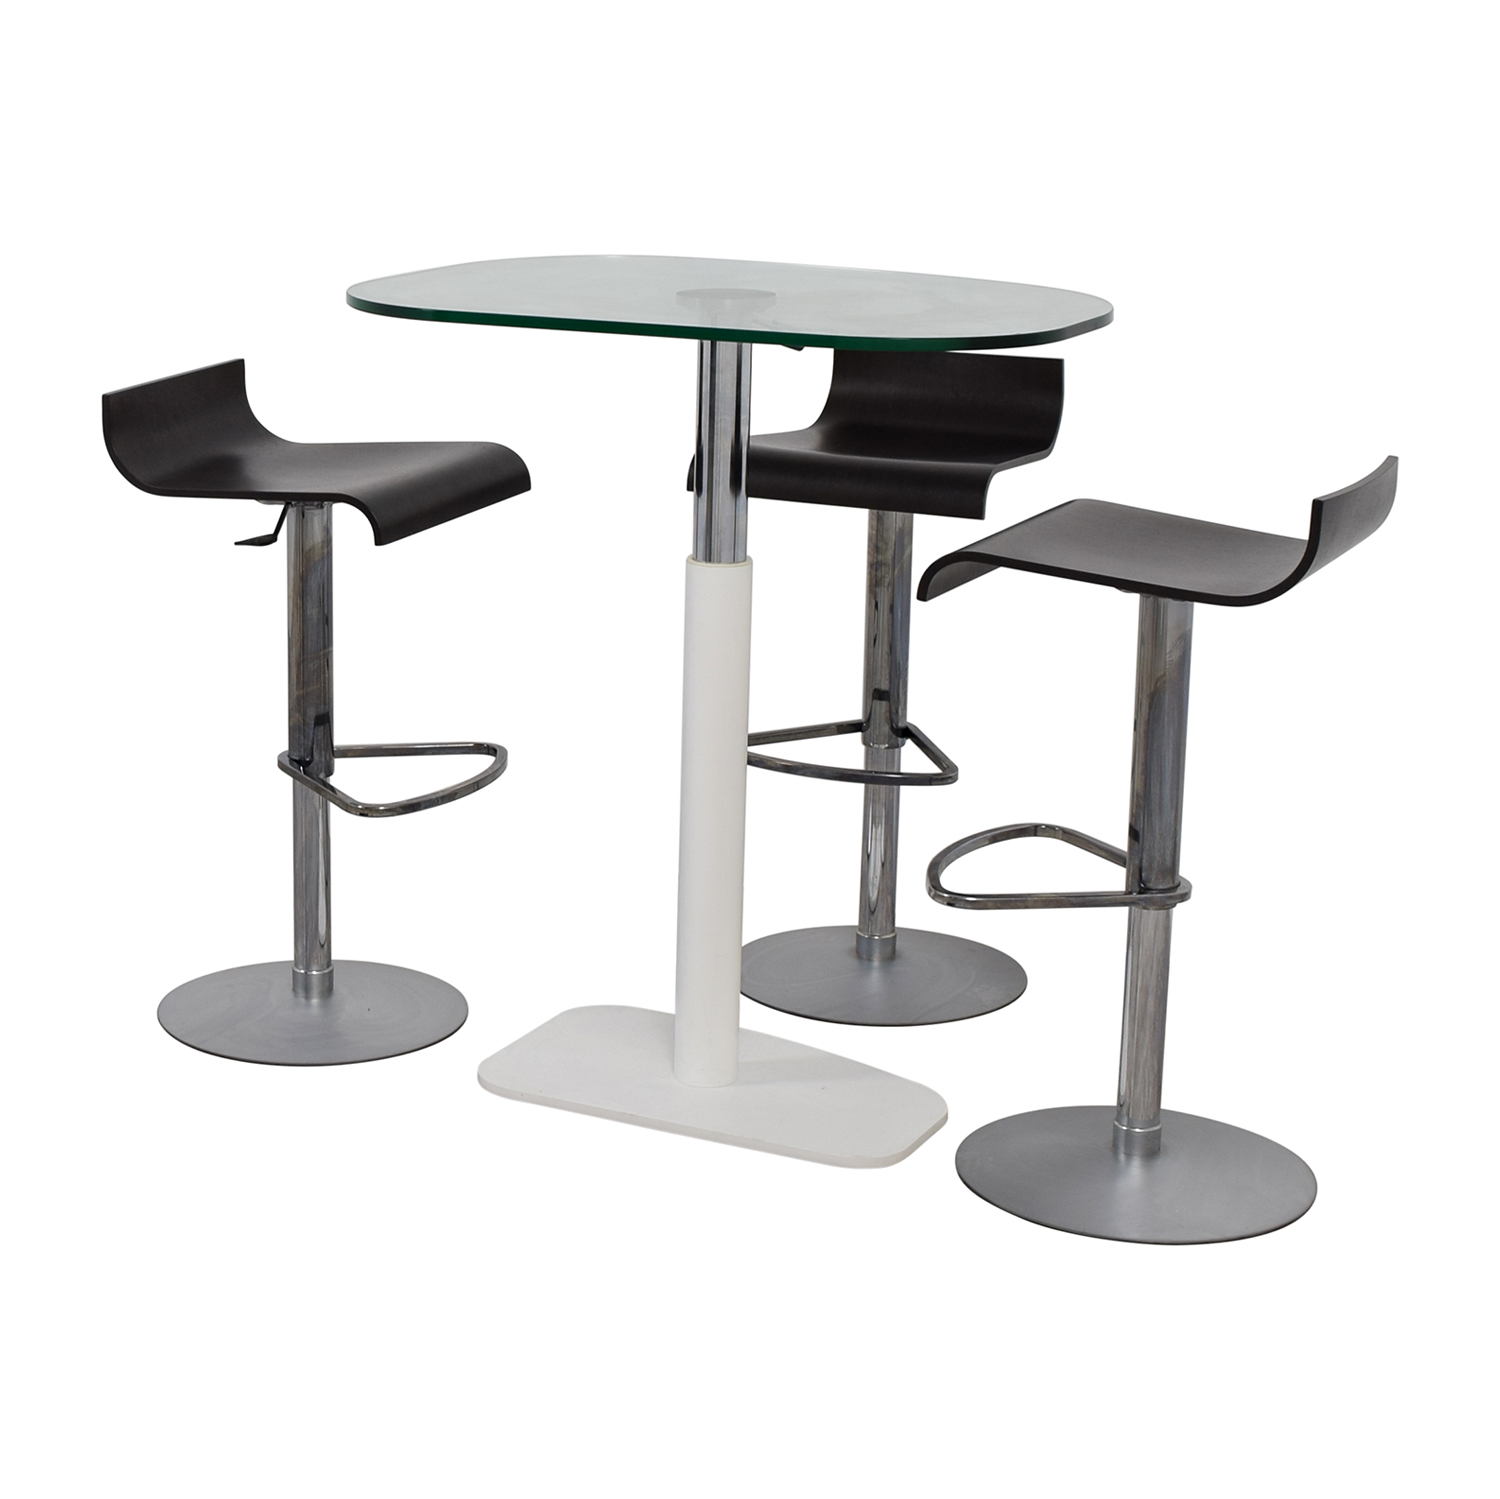 Ligne Roset Ligne Roset Adjustable Counter Height Table and Bar Stools dimensions